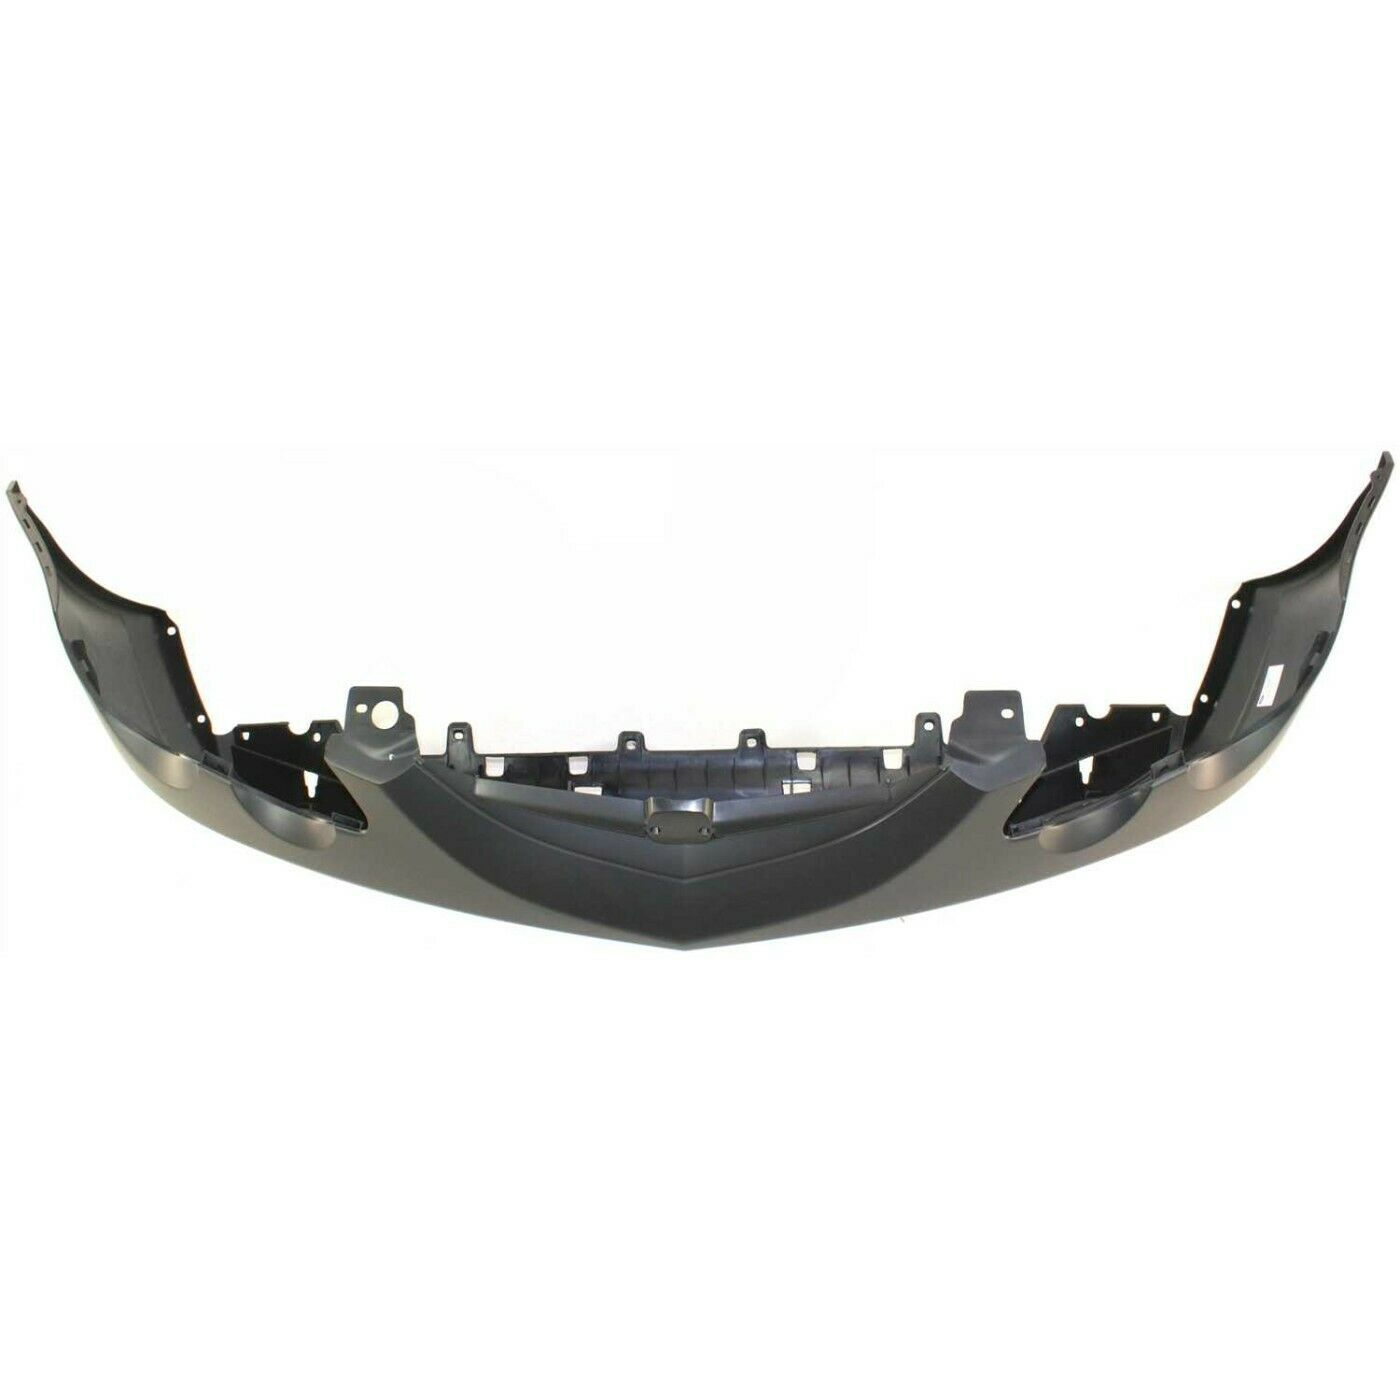 Front Bumper Cover For 2002-2004 Acura RSX W/ License